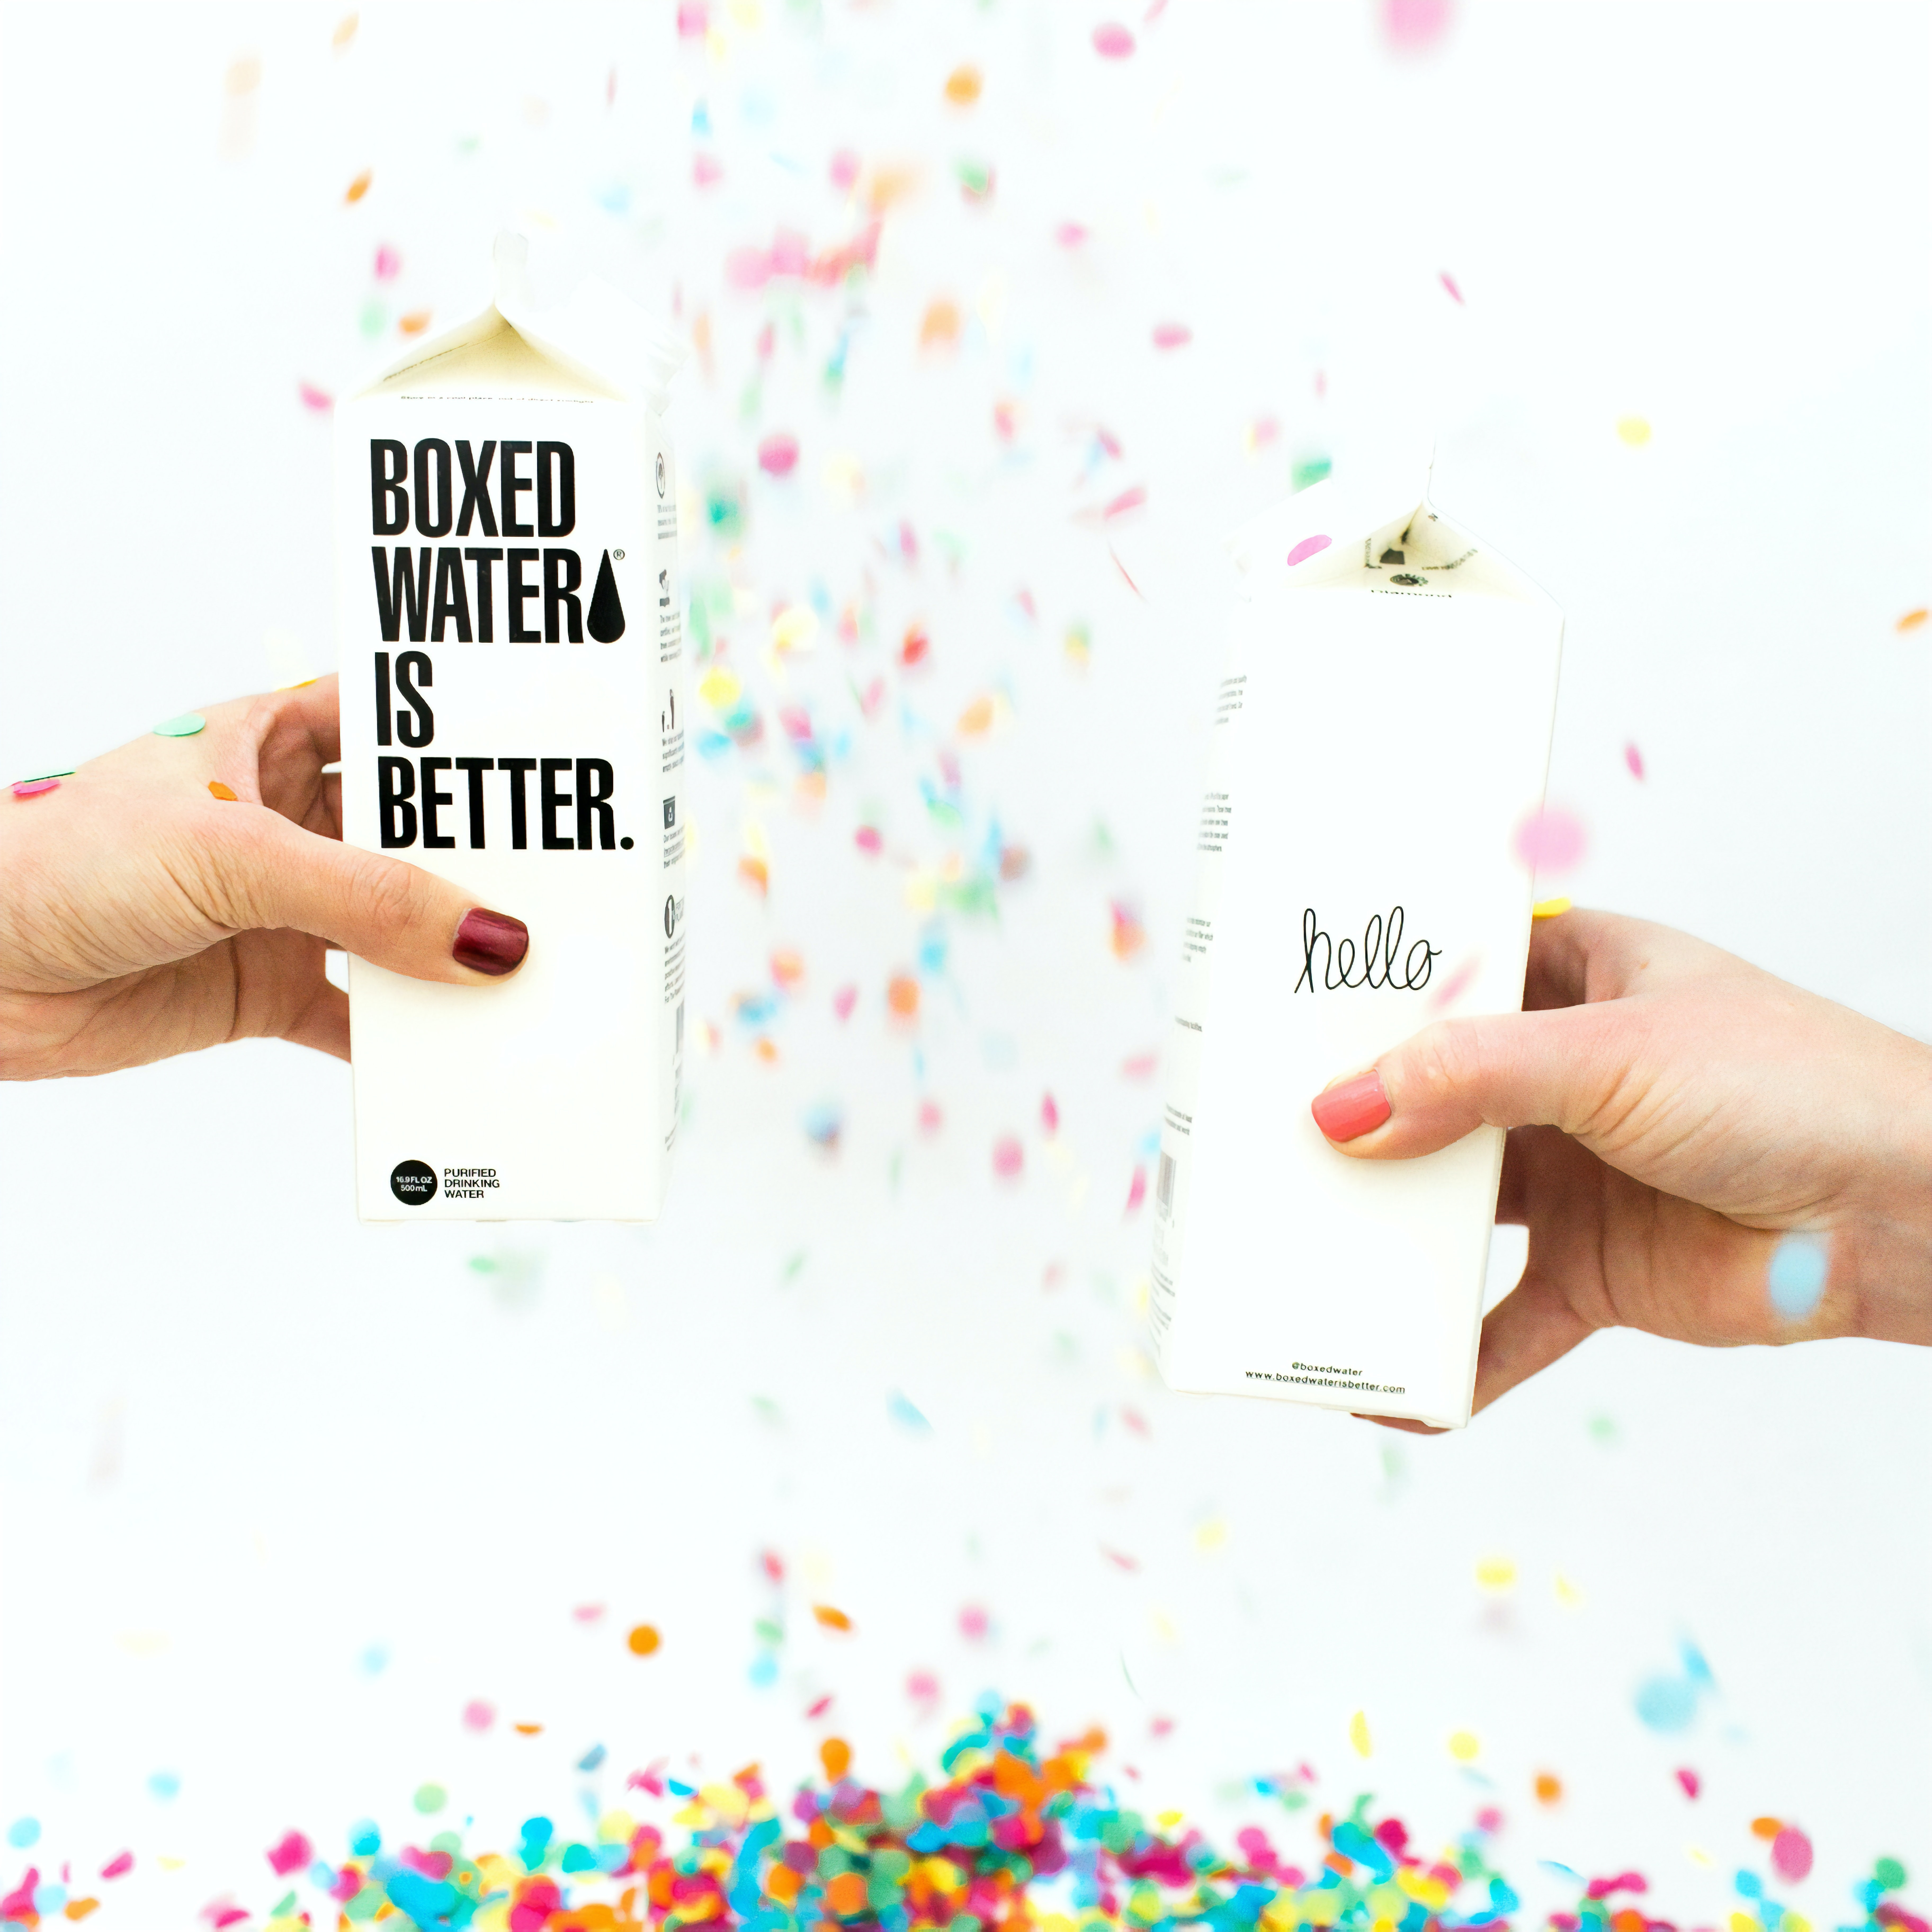 Two people holding Boxed Water cartons while confetti falls